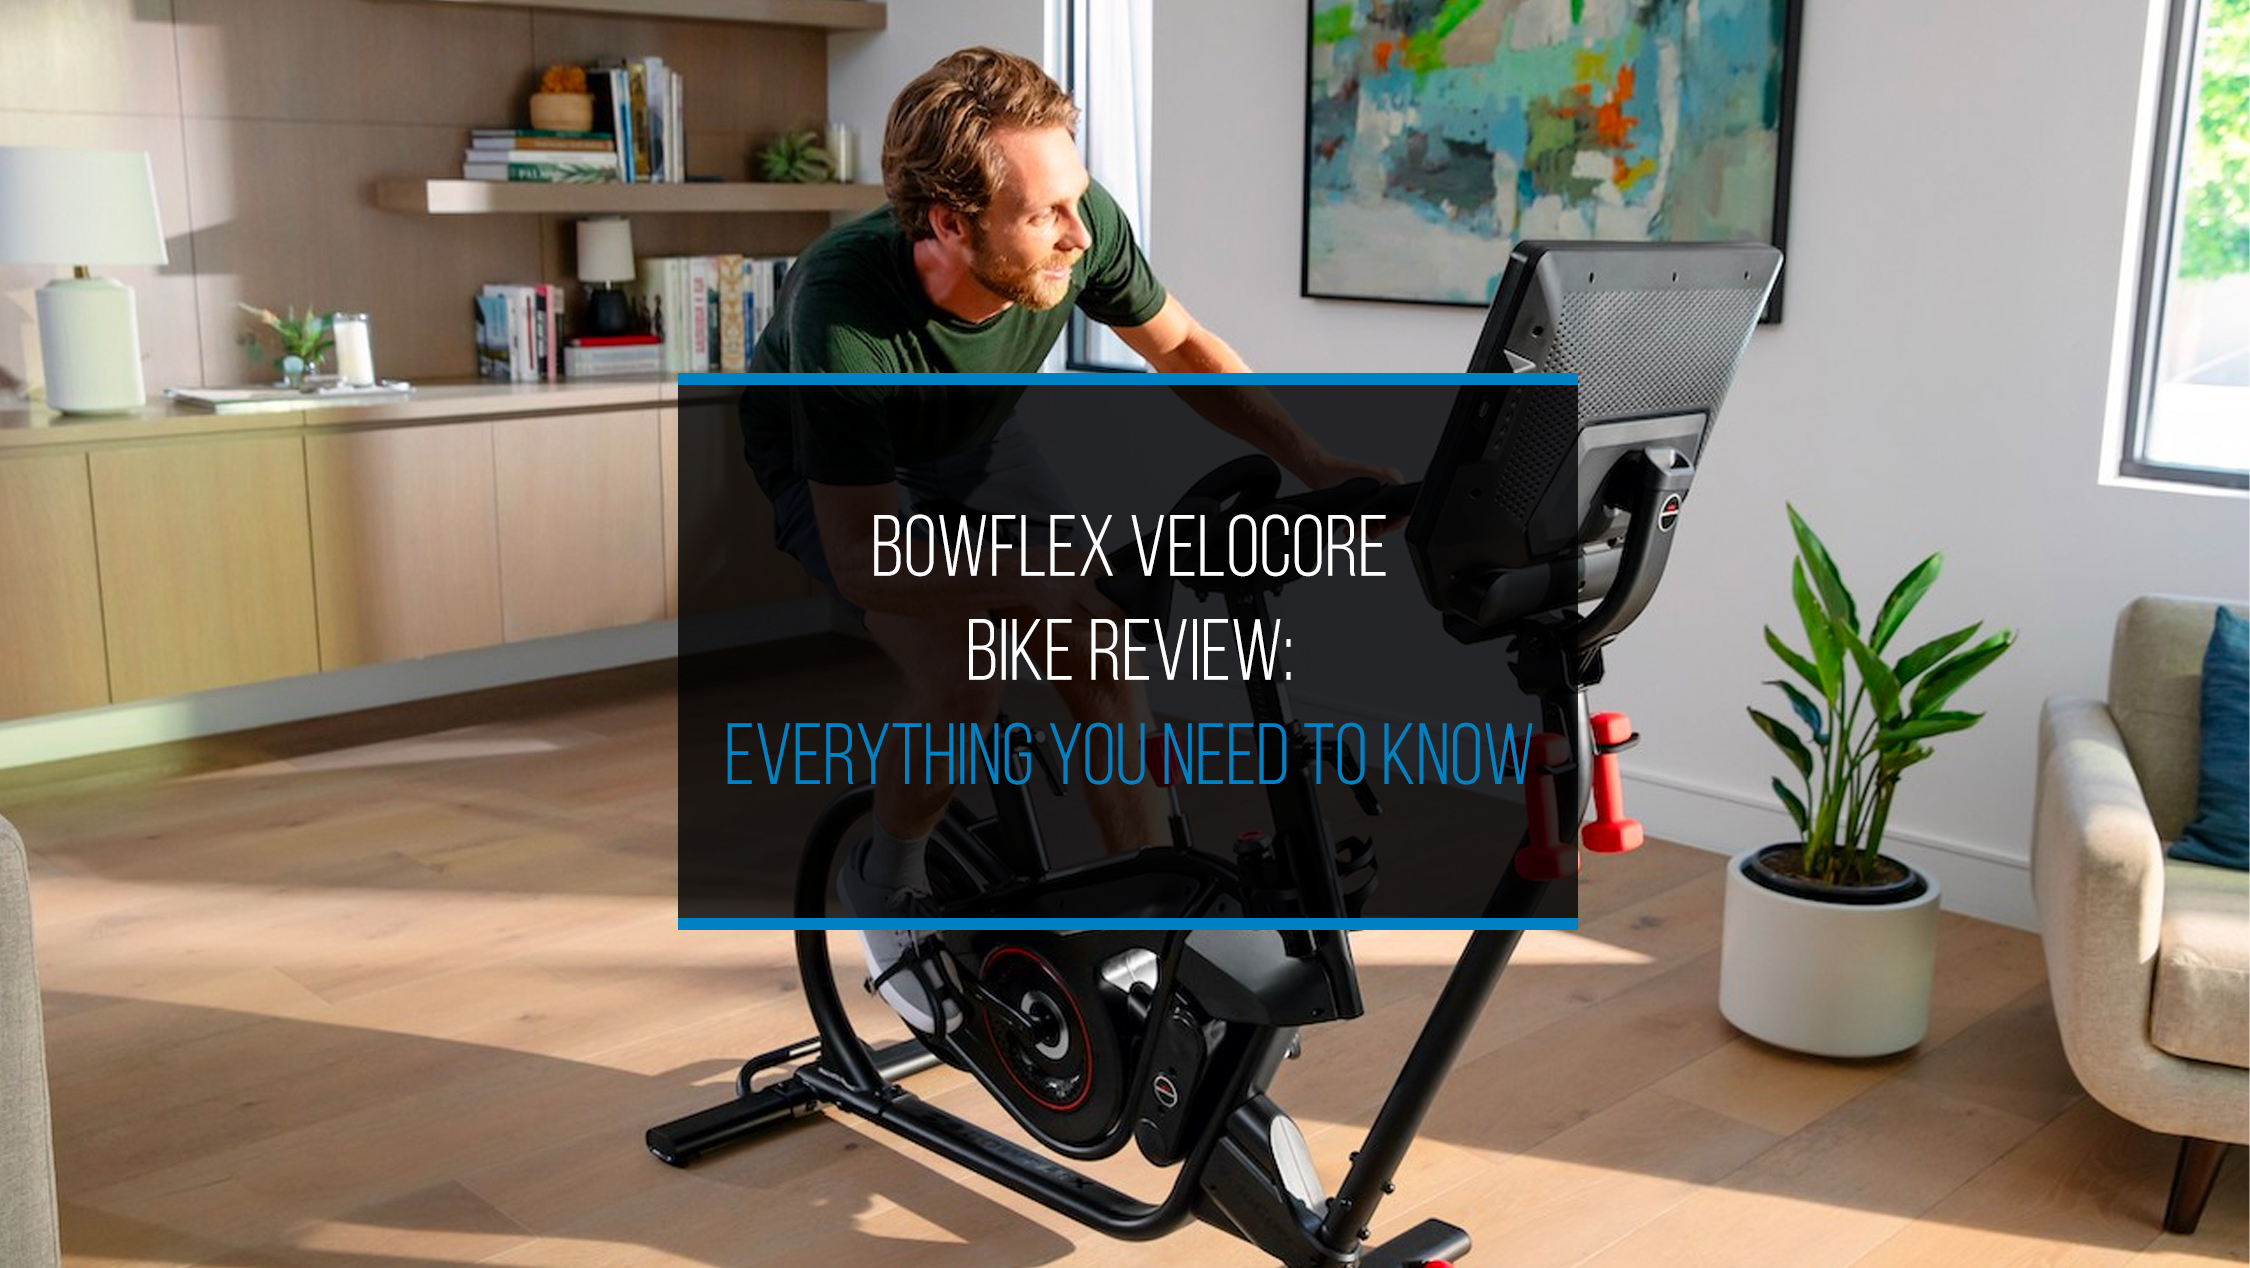 Bowflex VeloCore Bike Review - WP